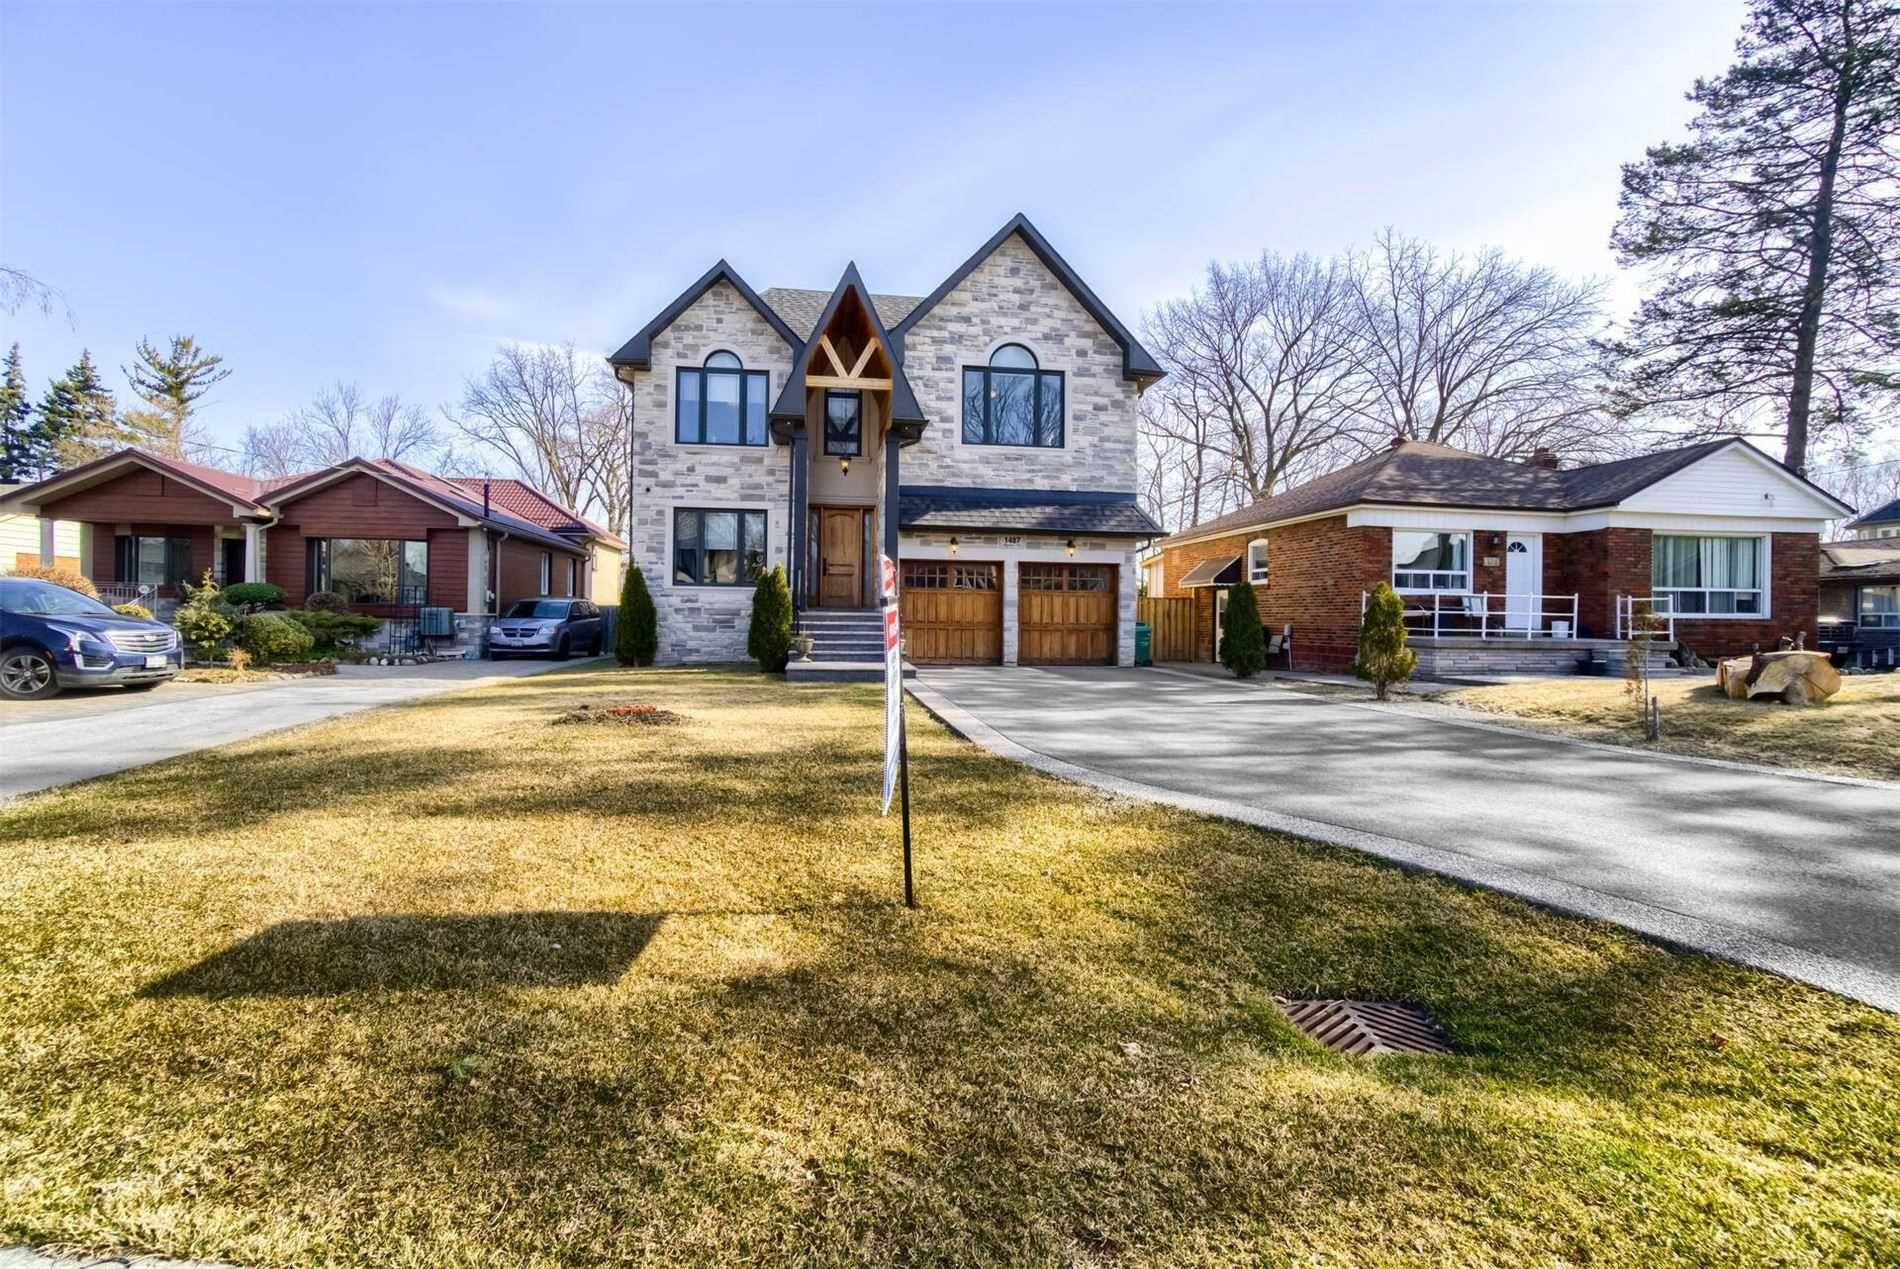 Main Photo: 1487 Myron Dr in Mississauga: Freehold for sale : MLS®# W5164789